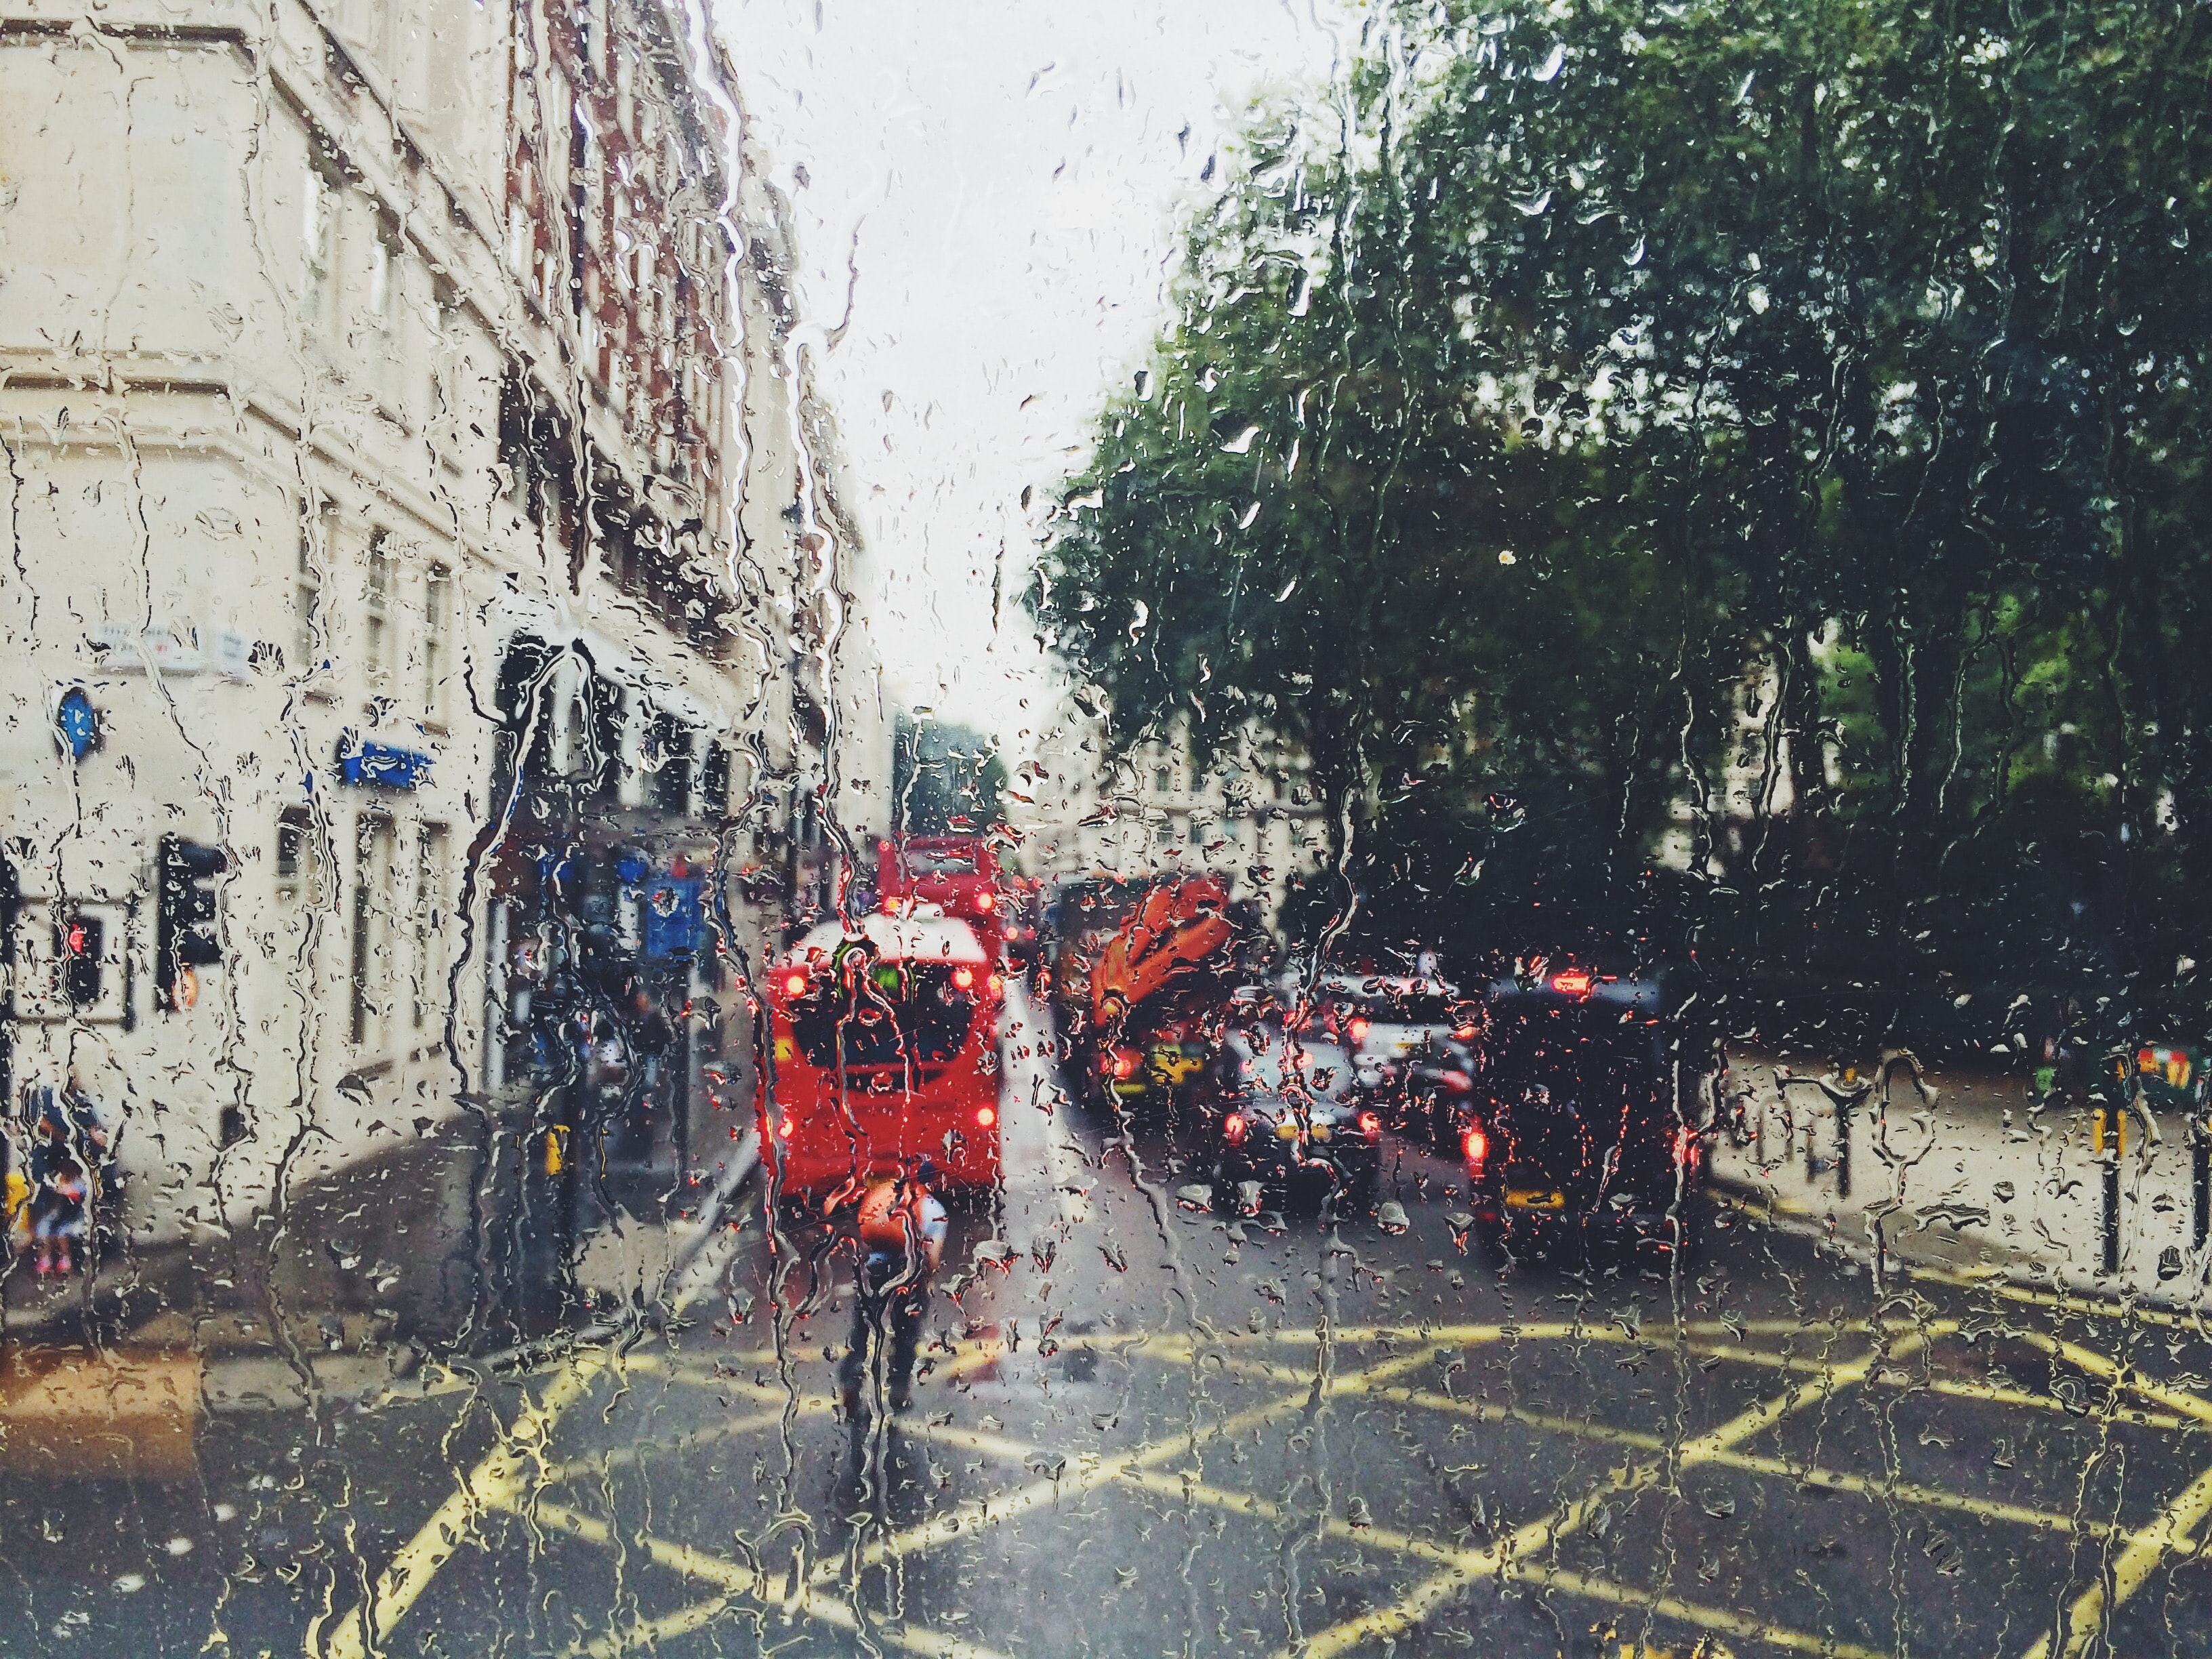 A busy London street seen through a rain-streaked window